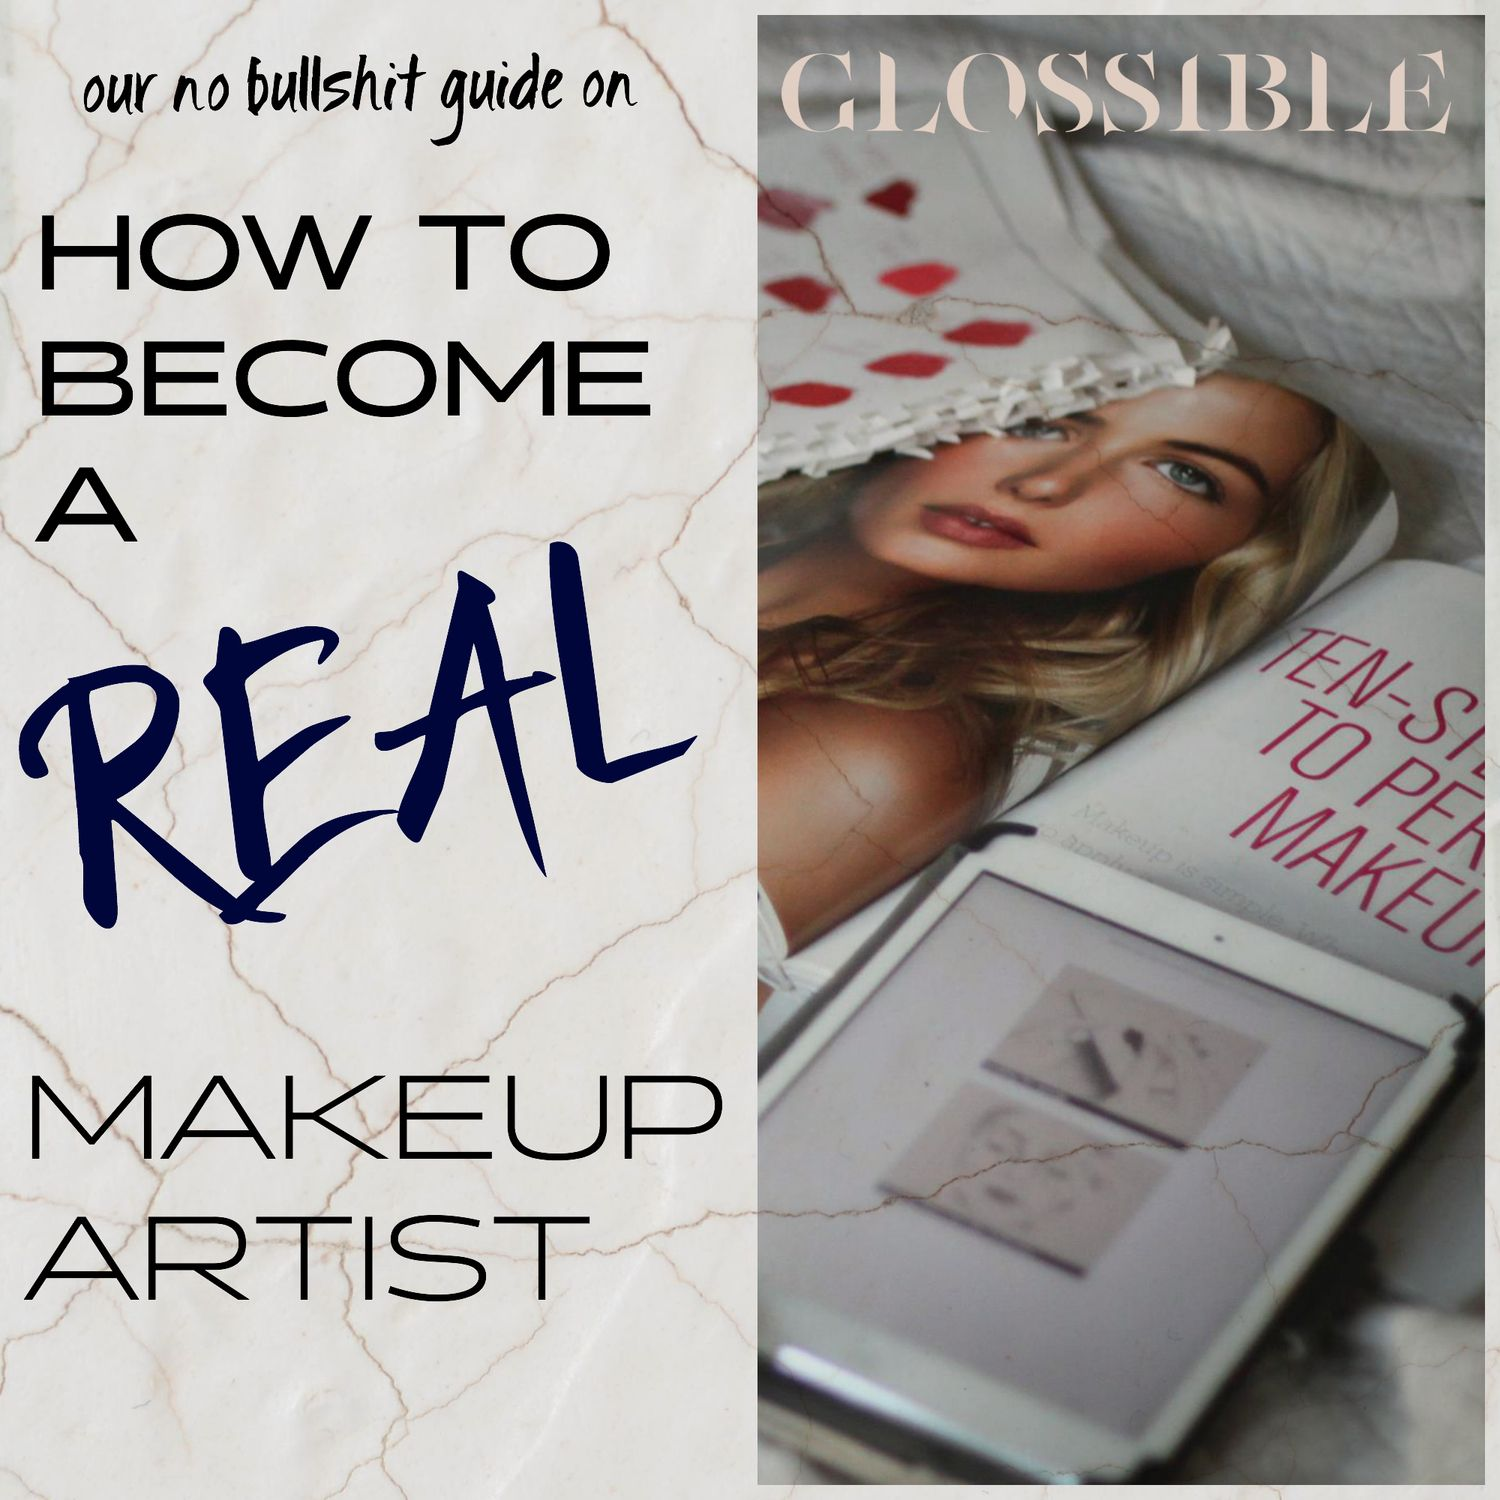 Jan 27 HOW TO A REAL MAKEUP ARTIST a